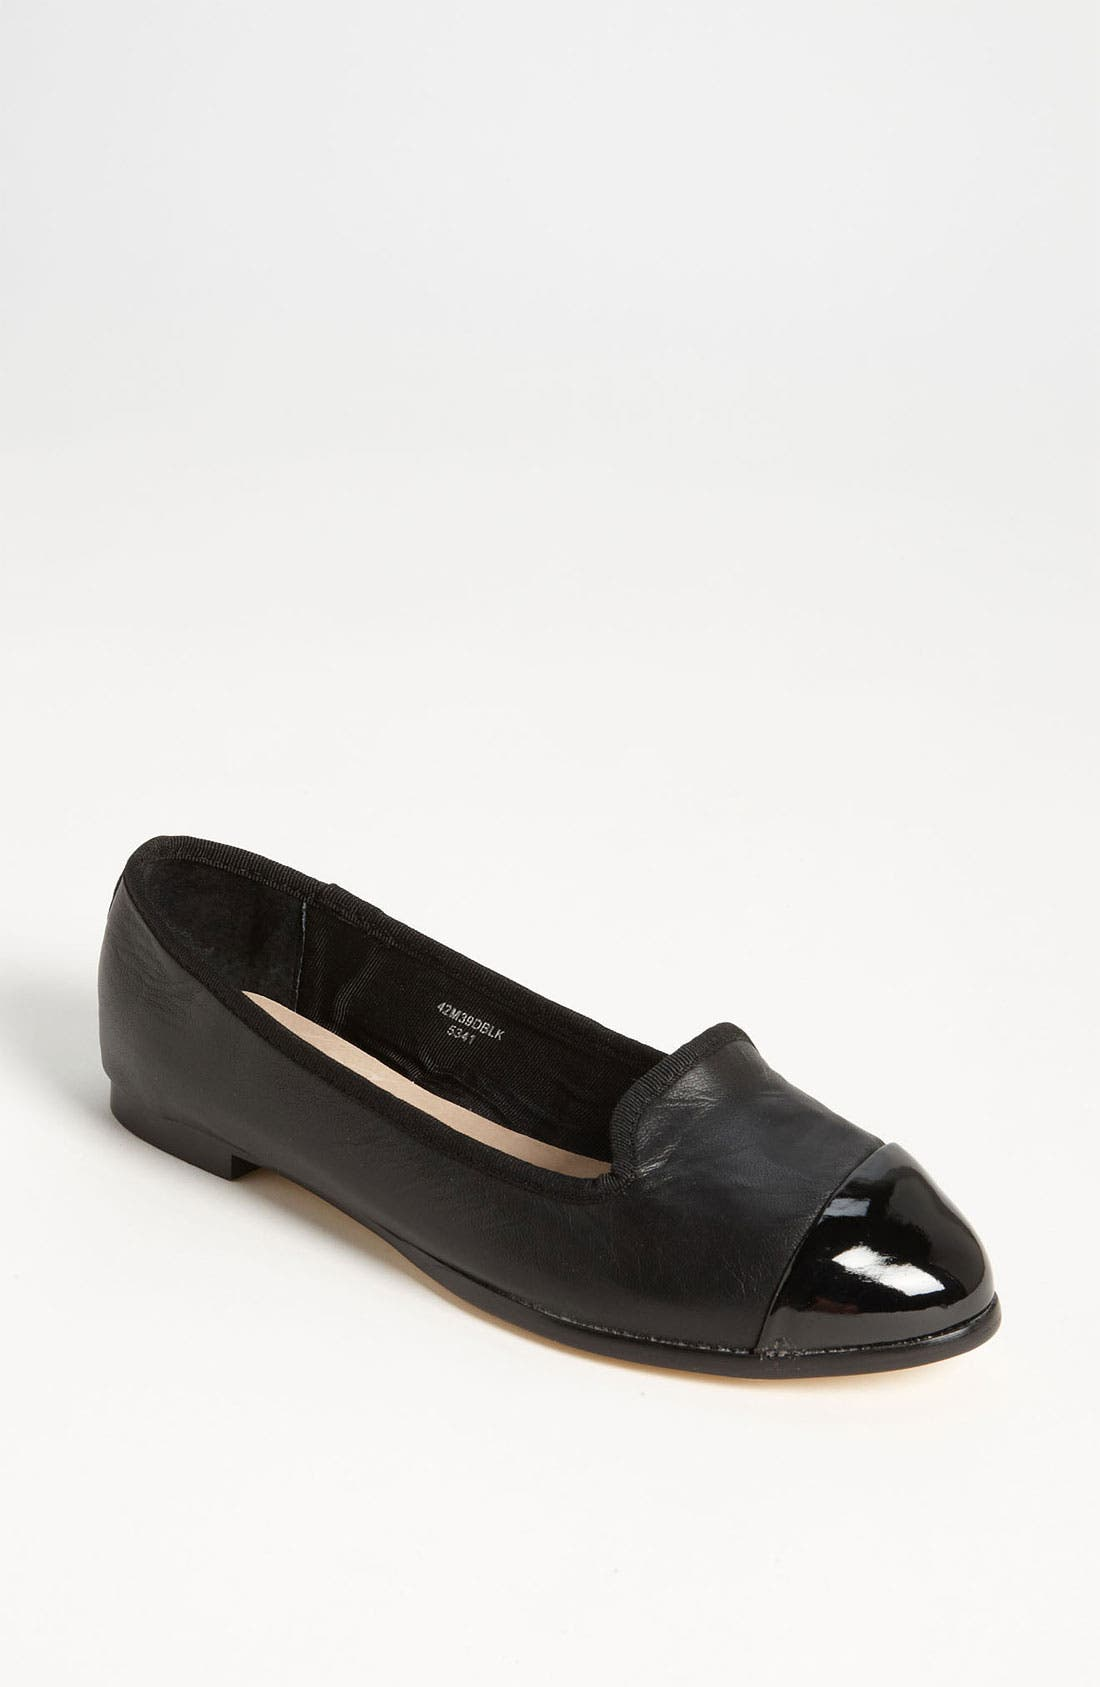 Alternate Image 1 Selected - Topshop 'Mill' Flat